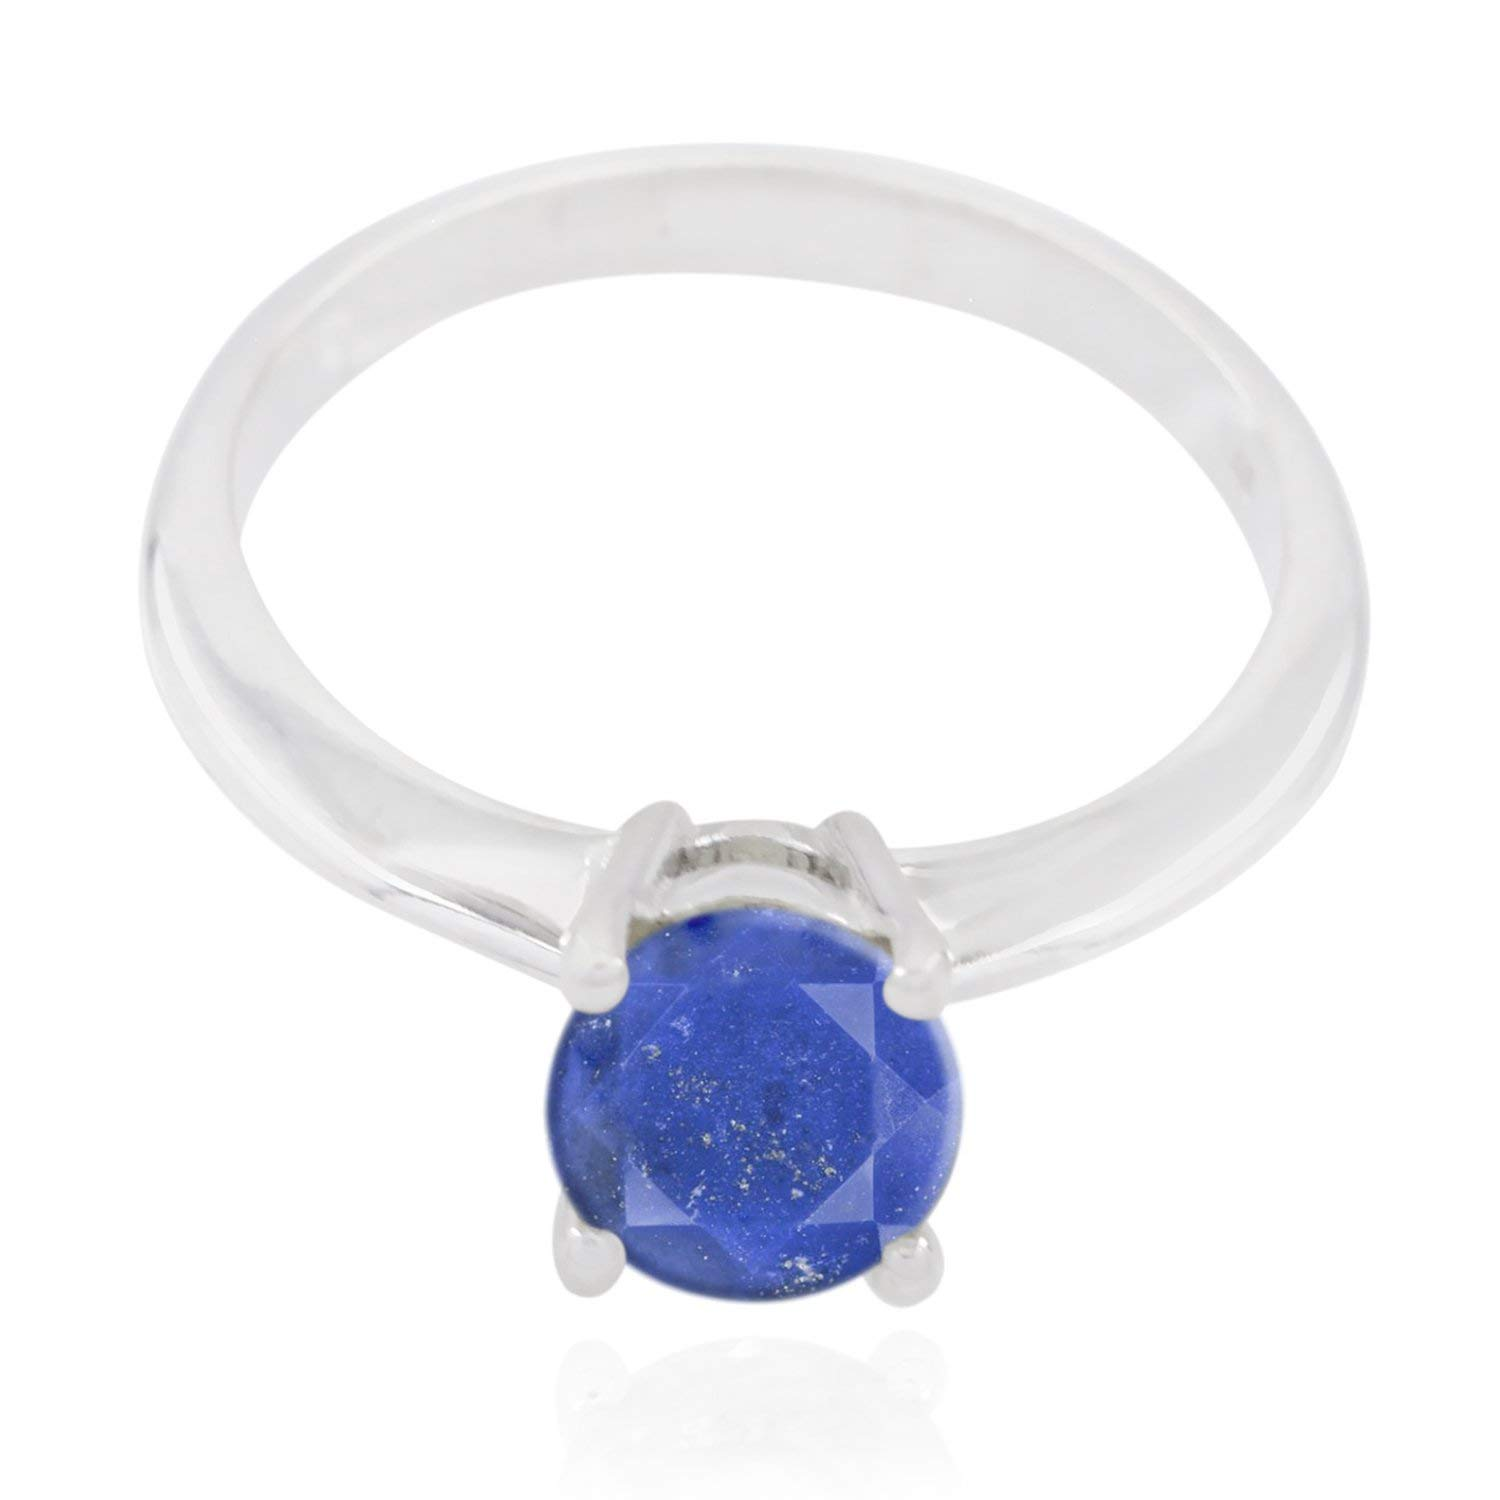 Good Gemstones Round Faceted Lapis-Lazulis Ring - Fashion Silber Blue Lapis-Lazulis Good Gemstones Ring - Unique Jewelry Great Item Christmas for mom Monogram Stack Ring -US 4